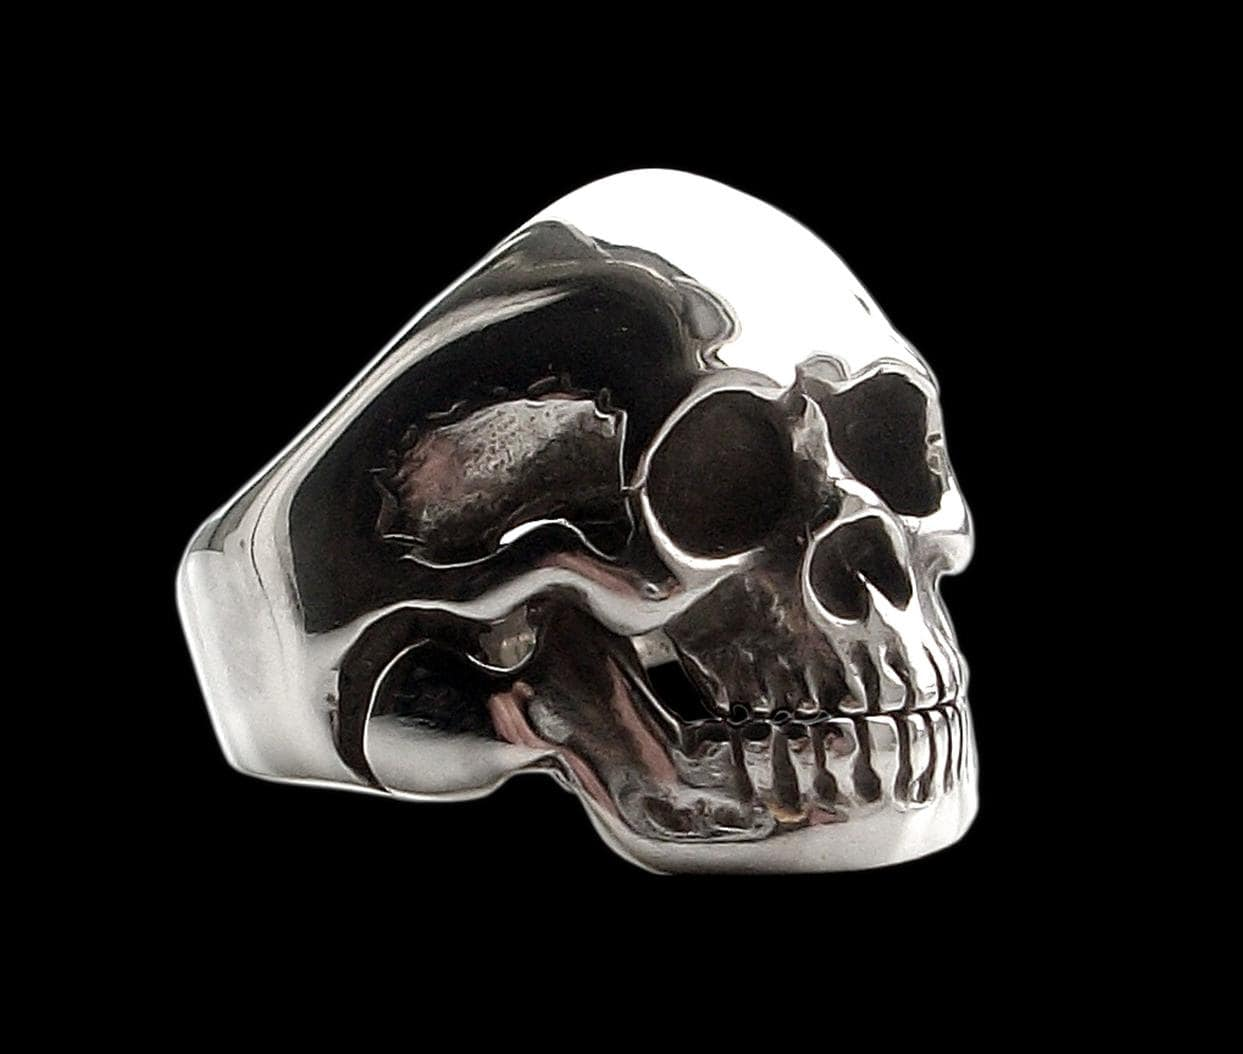 rings vintage pin ringen drop biker ship skeleton jewelry trendy man for punk men bryanna cool